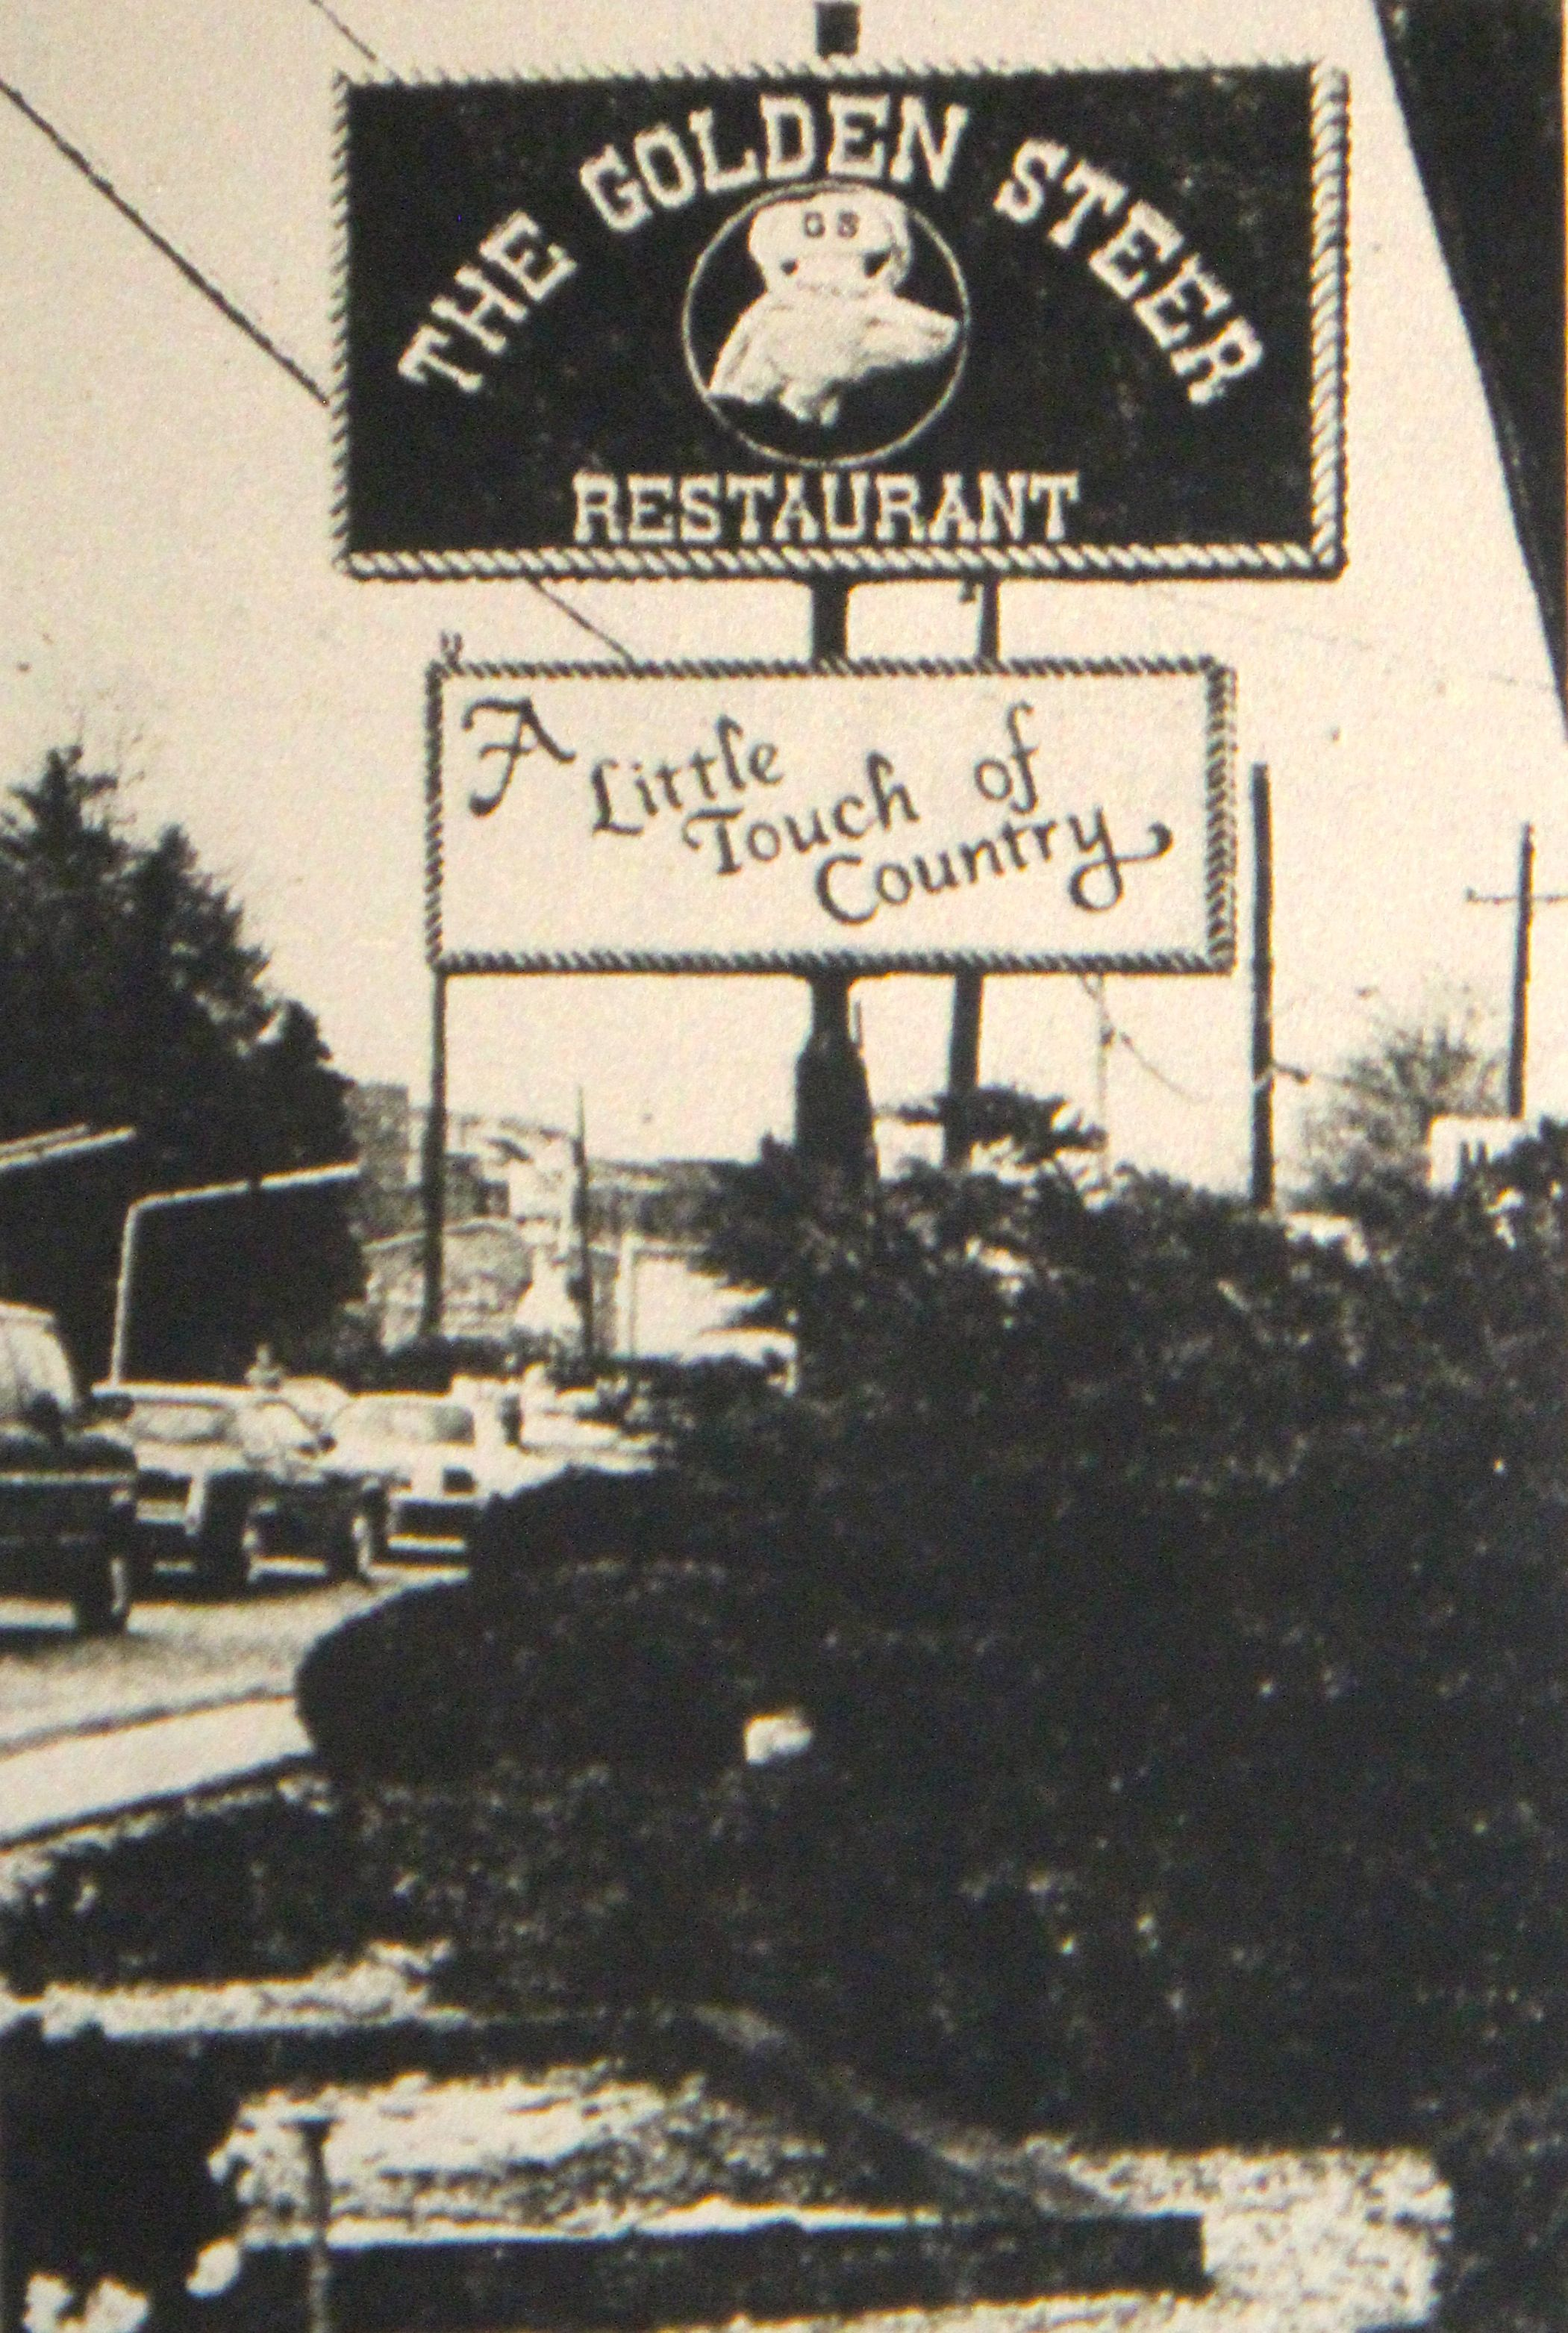 The Golden Steer in Hawthorne NJ   Photo from 1983